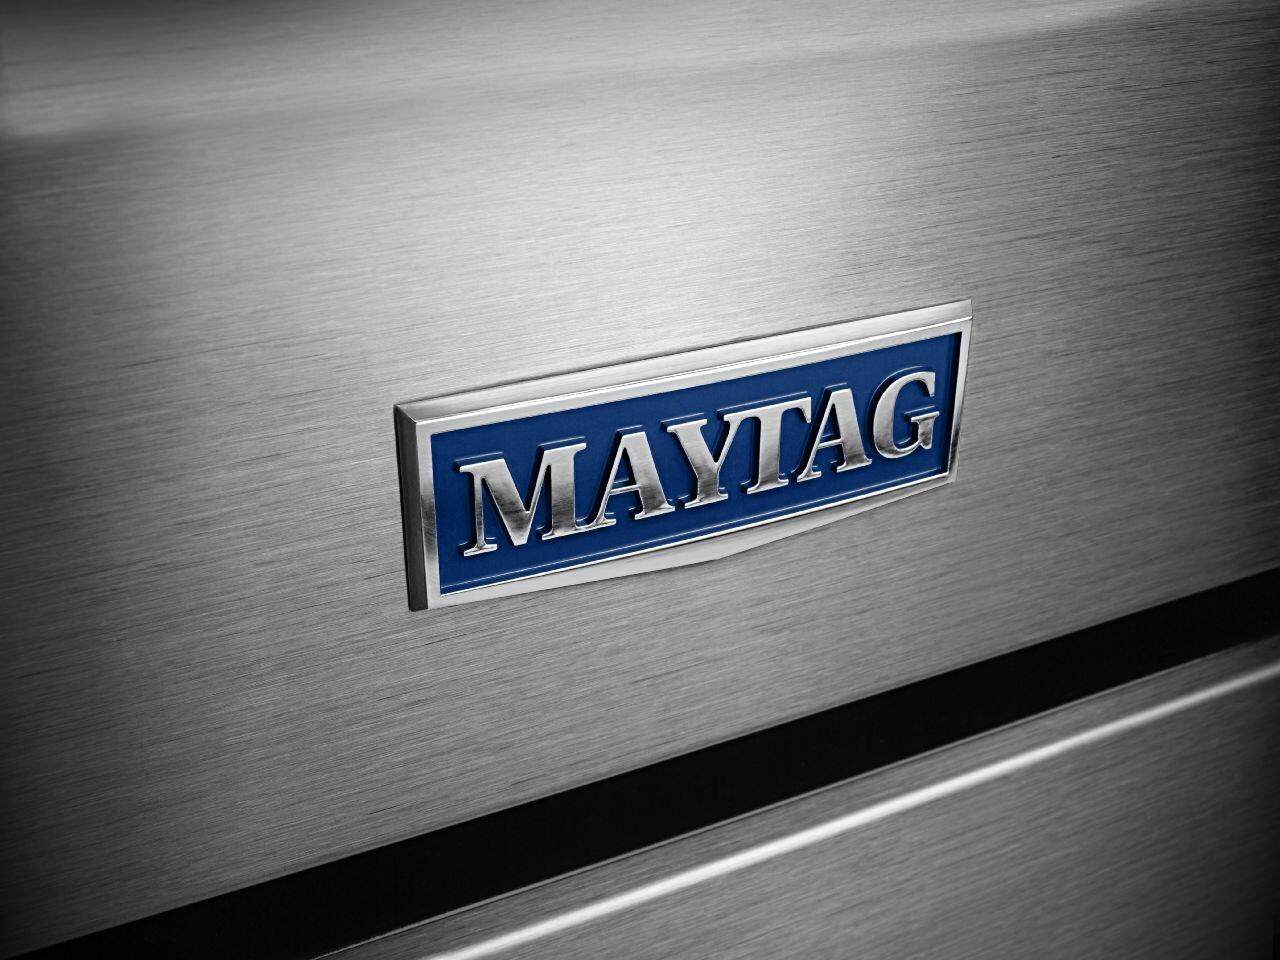 Maytag Mew9627fz 27 Inch Double Wall Oven In Fingerprint